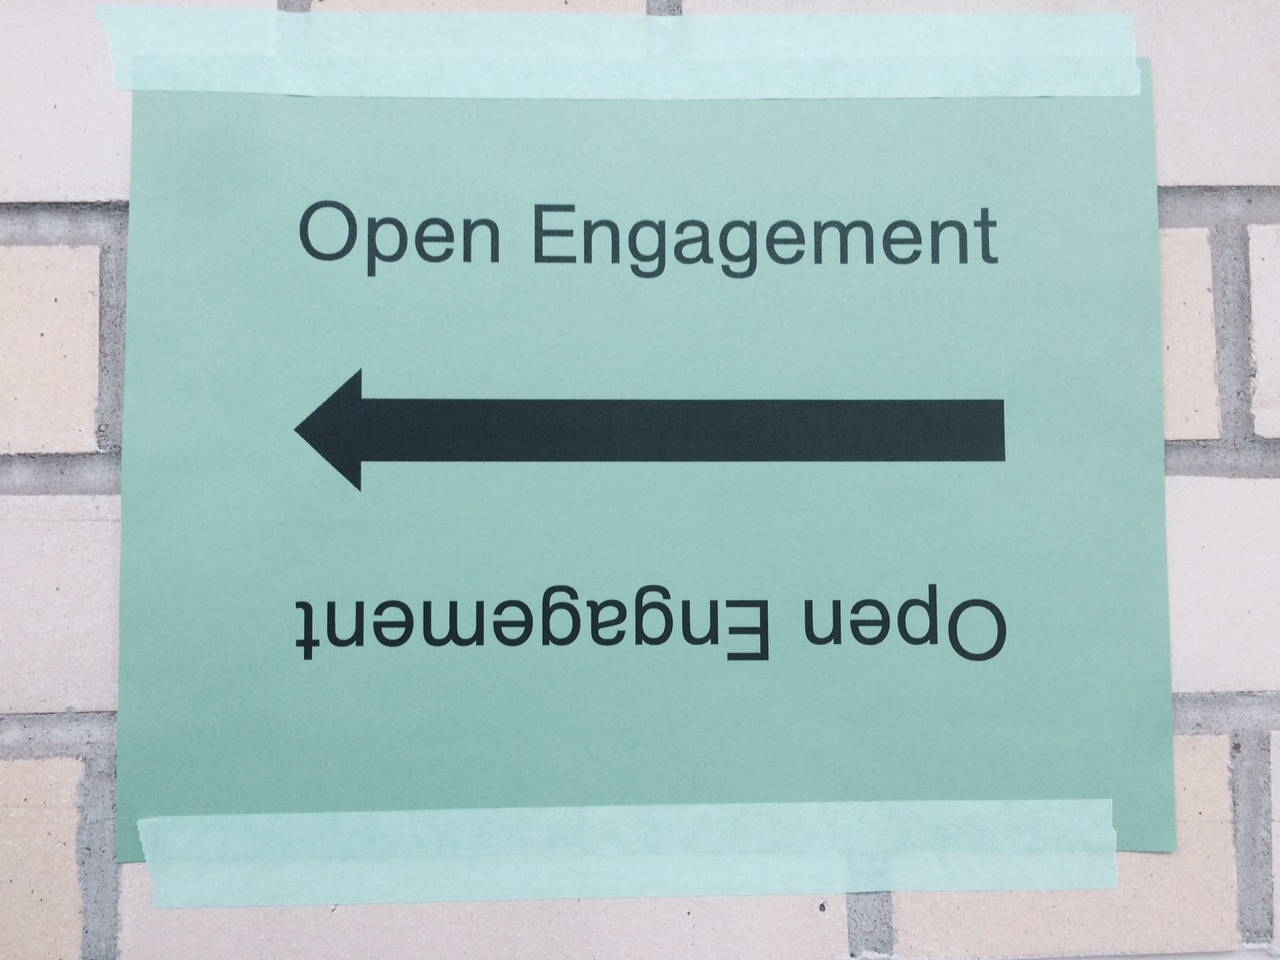 Sign for Open Engagement